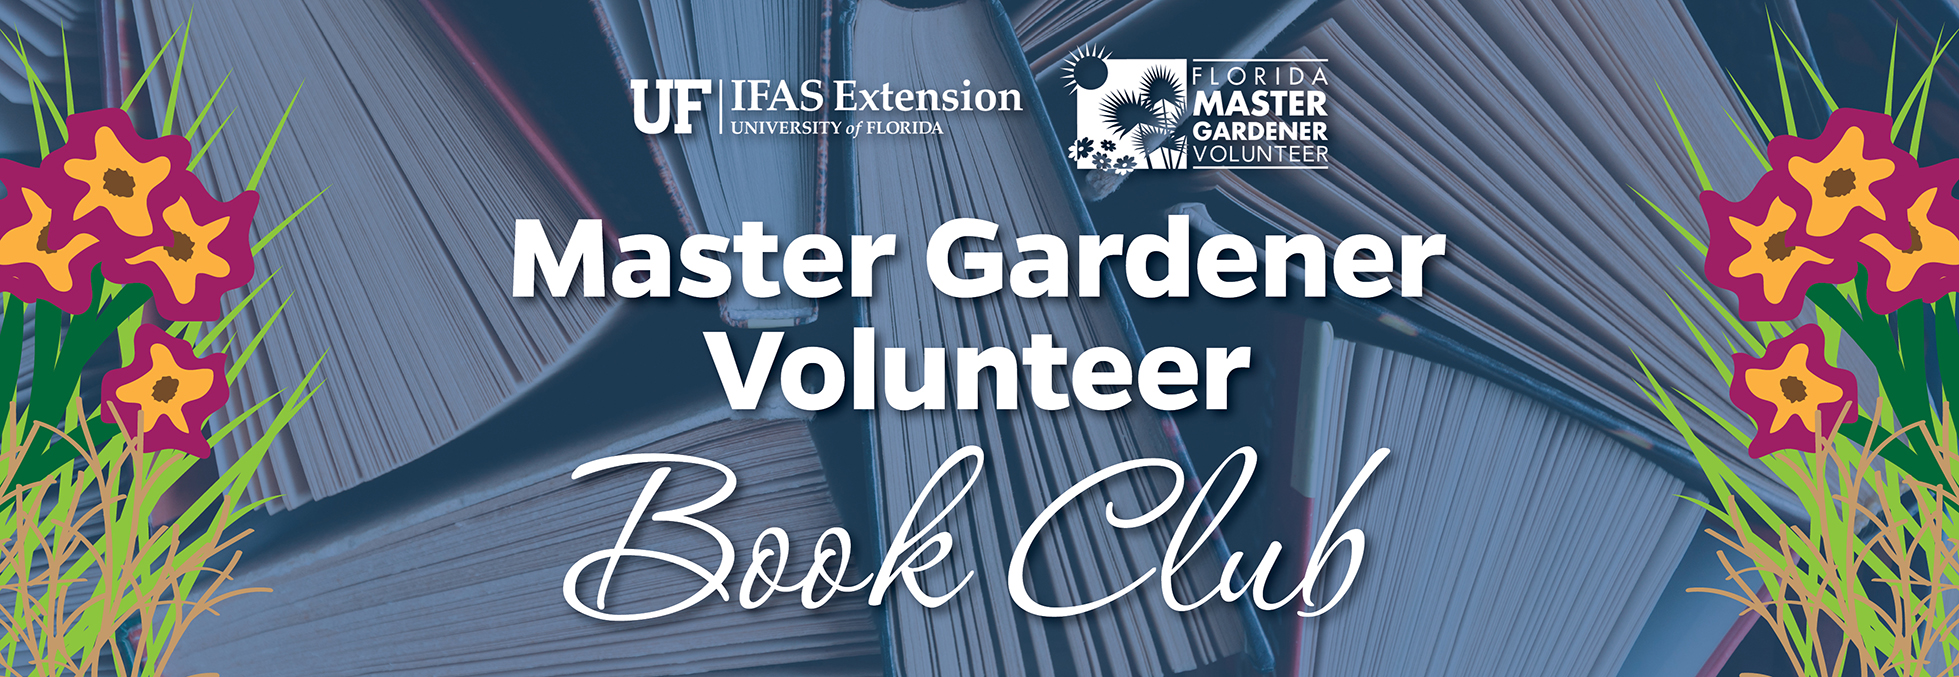 4.  Master Gardener Volunteer Book Club